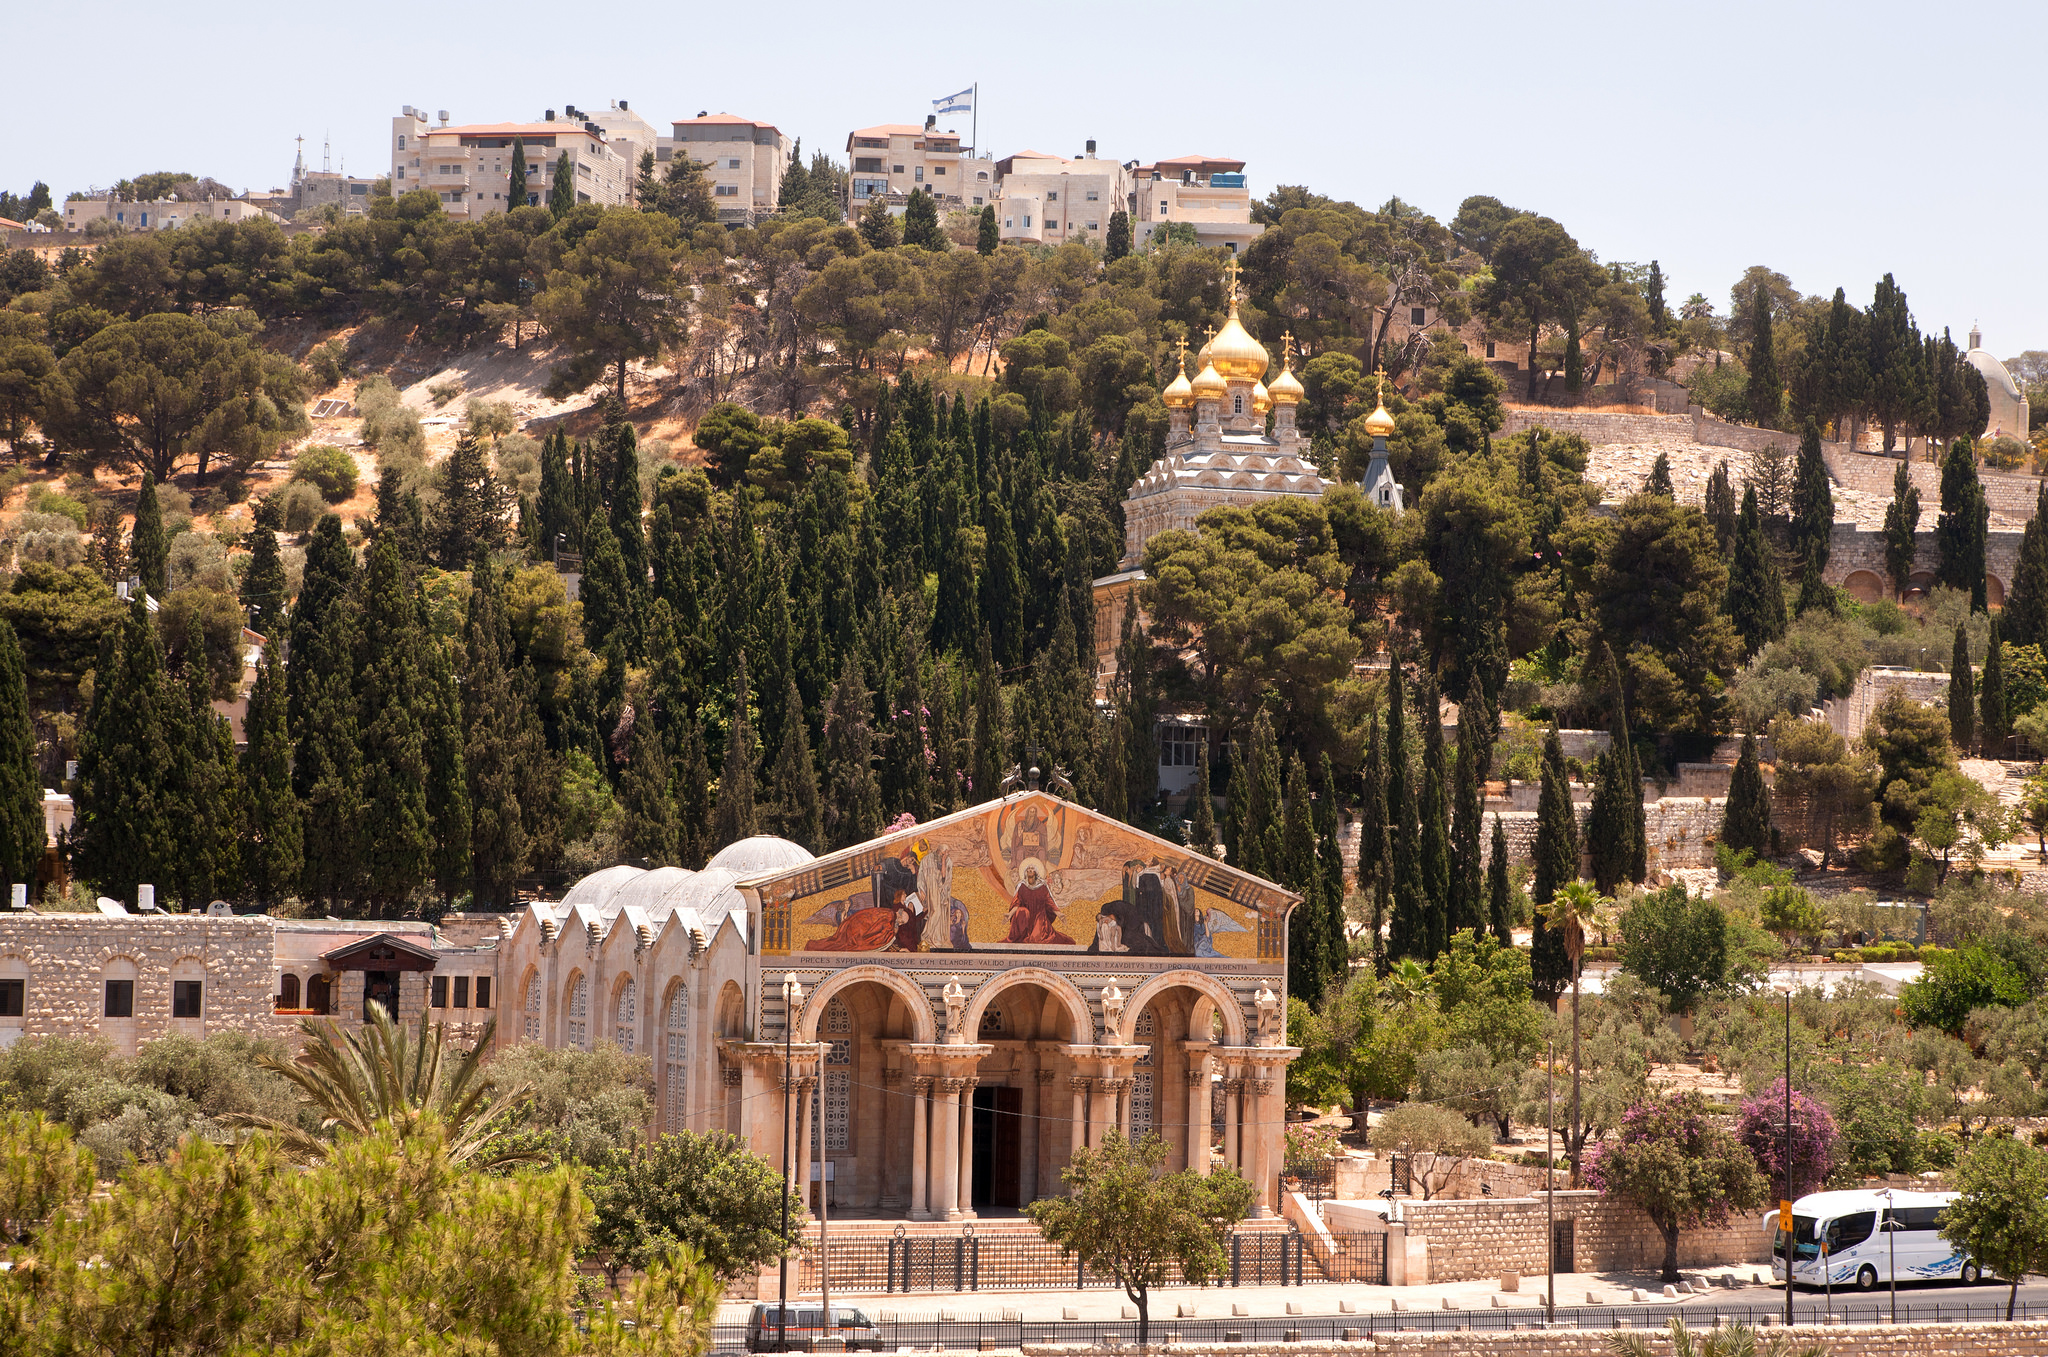 Looking at the Church of All Nations (Garden of Gethsemane) on the Mount of Olives